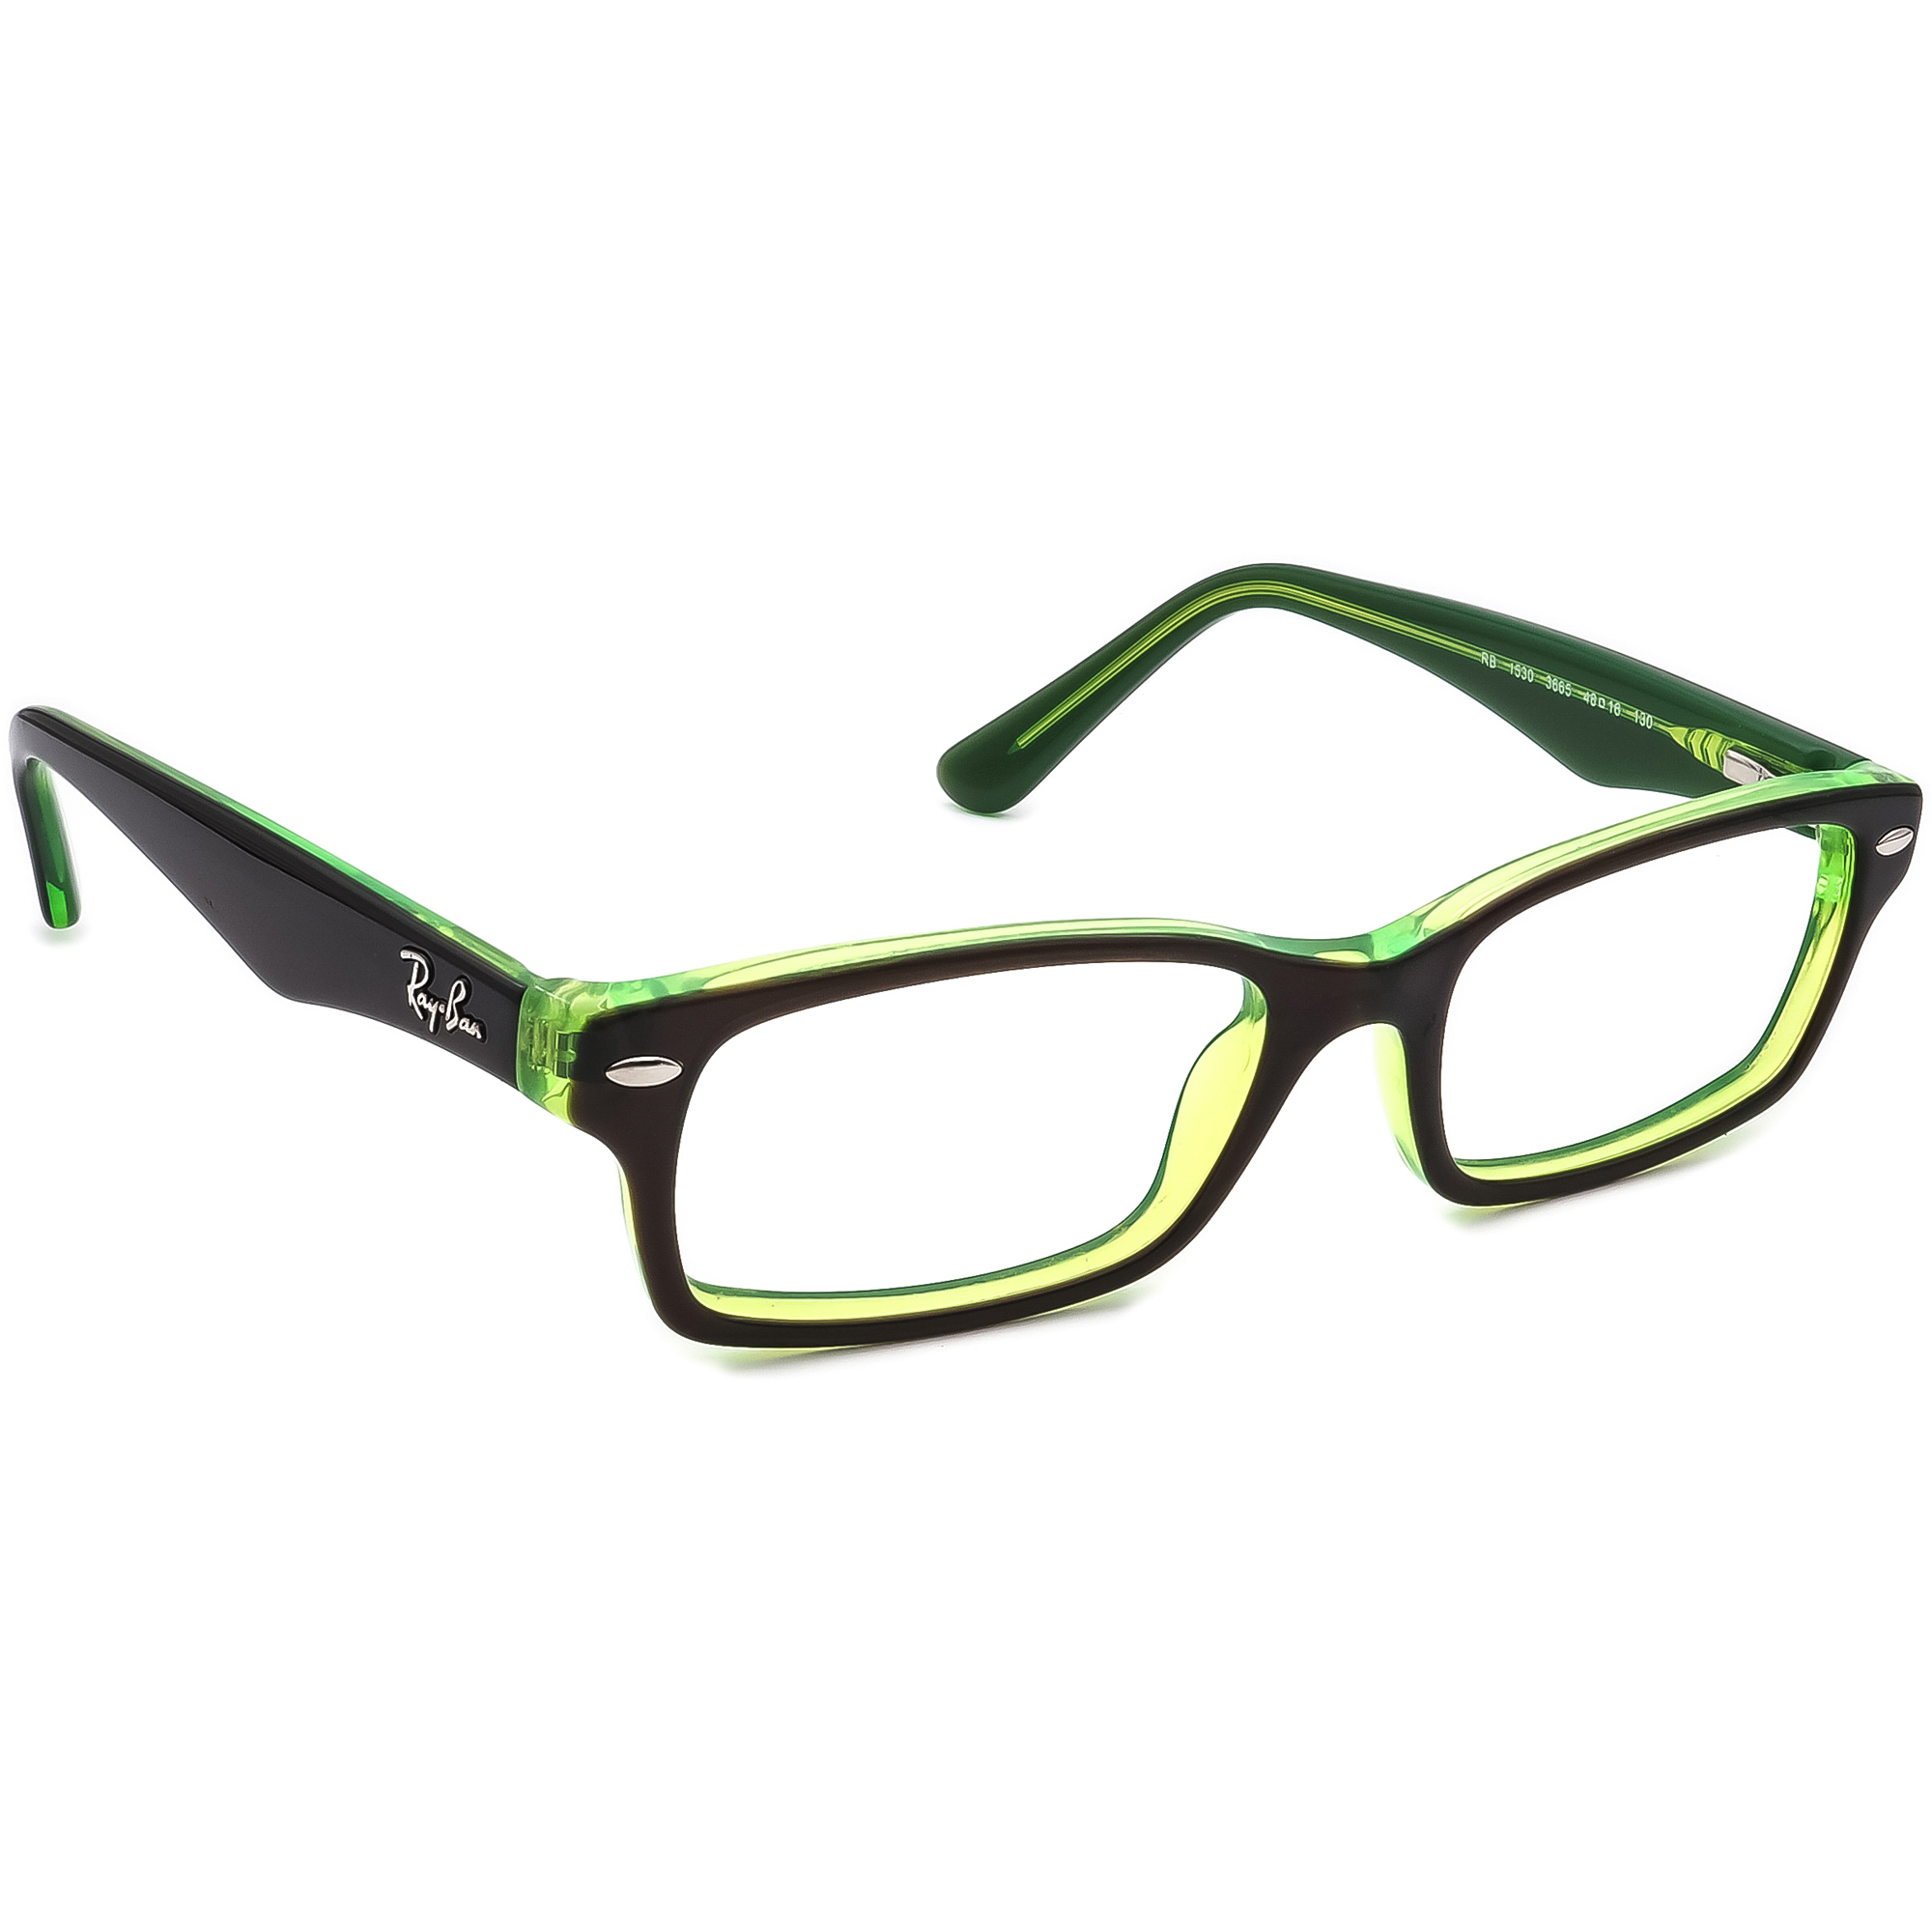 Ray Ban Eyeglasses RB 1530 3665 Havana on Green Horn Rim Frame 48[]16 130 Small